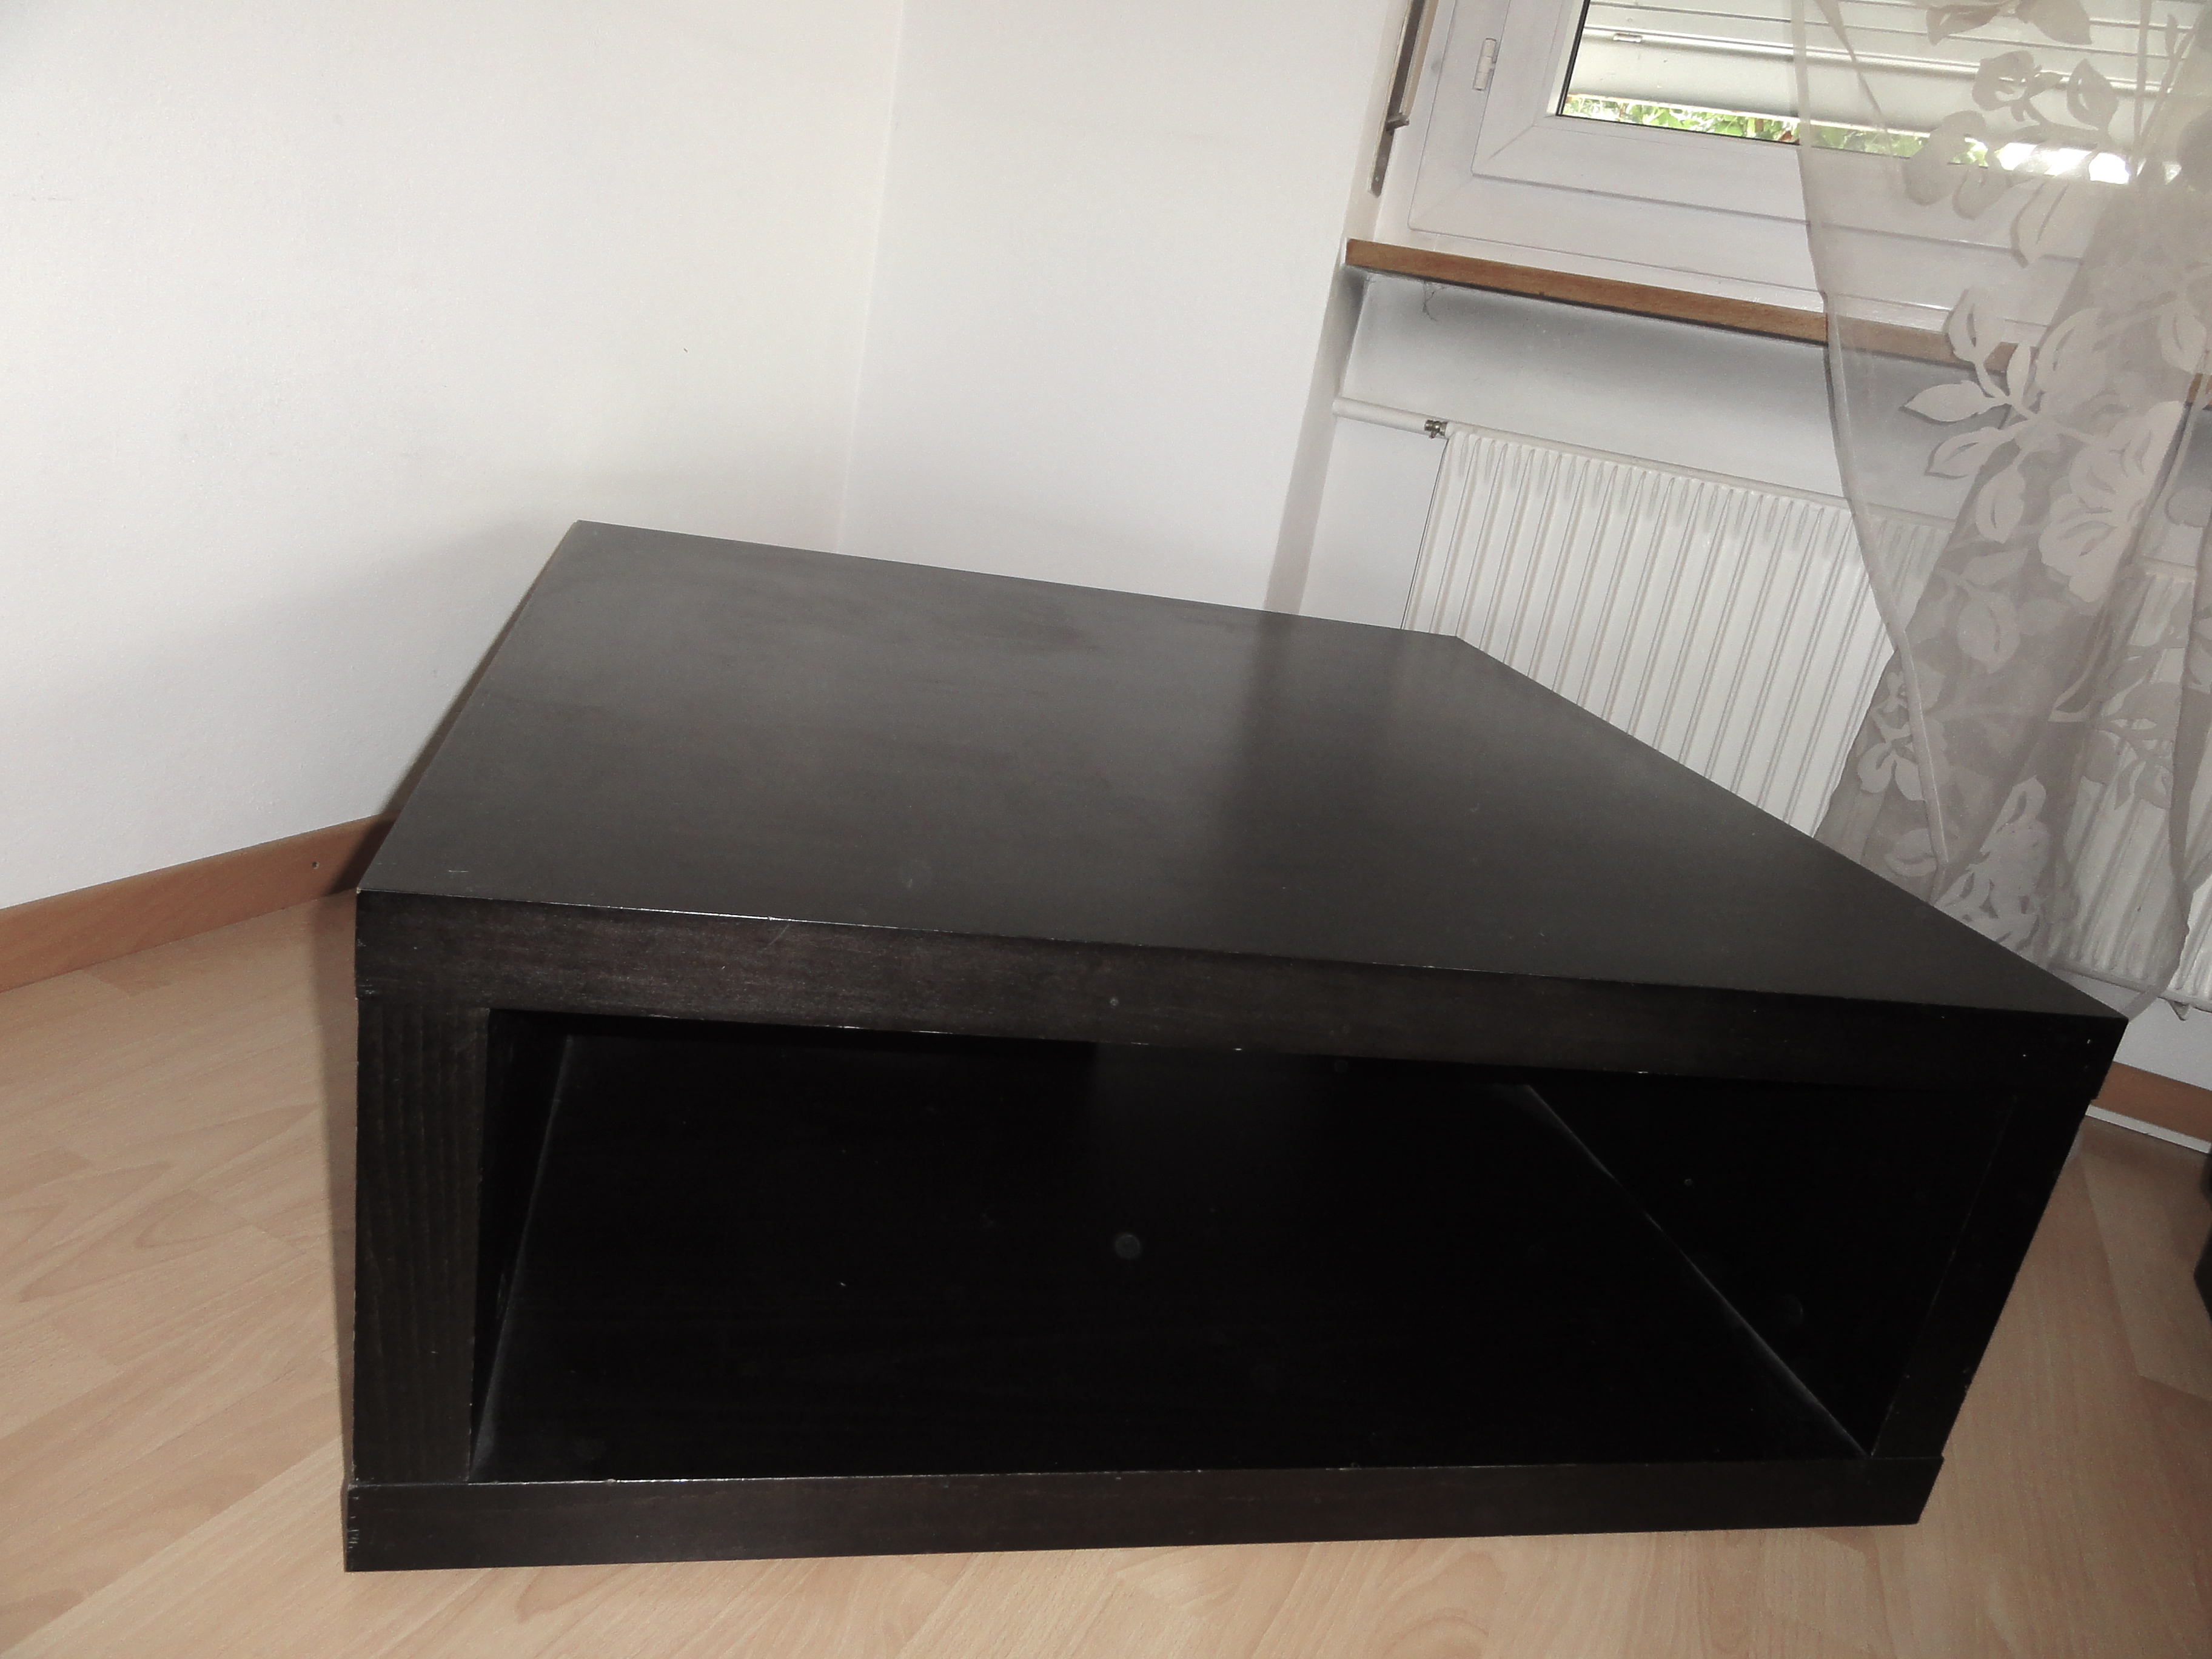 Table Basse Brun Noir Homeezy